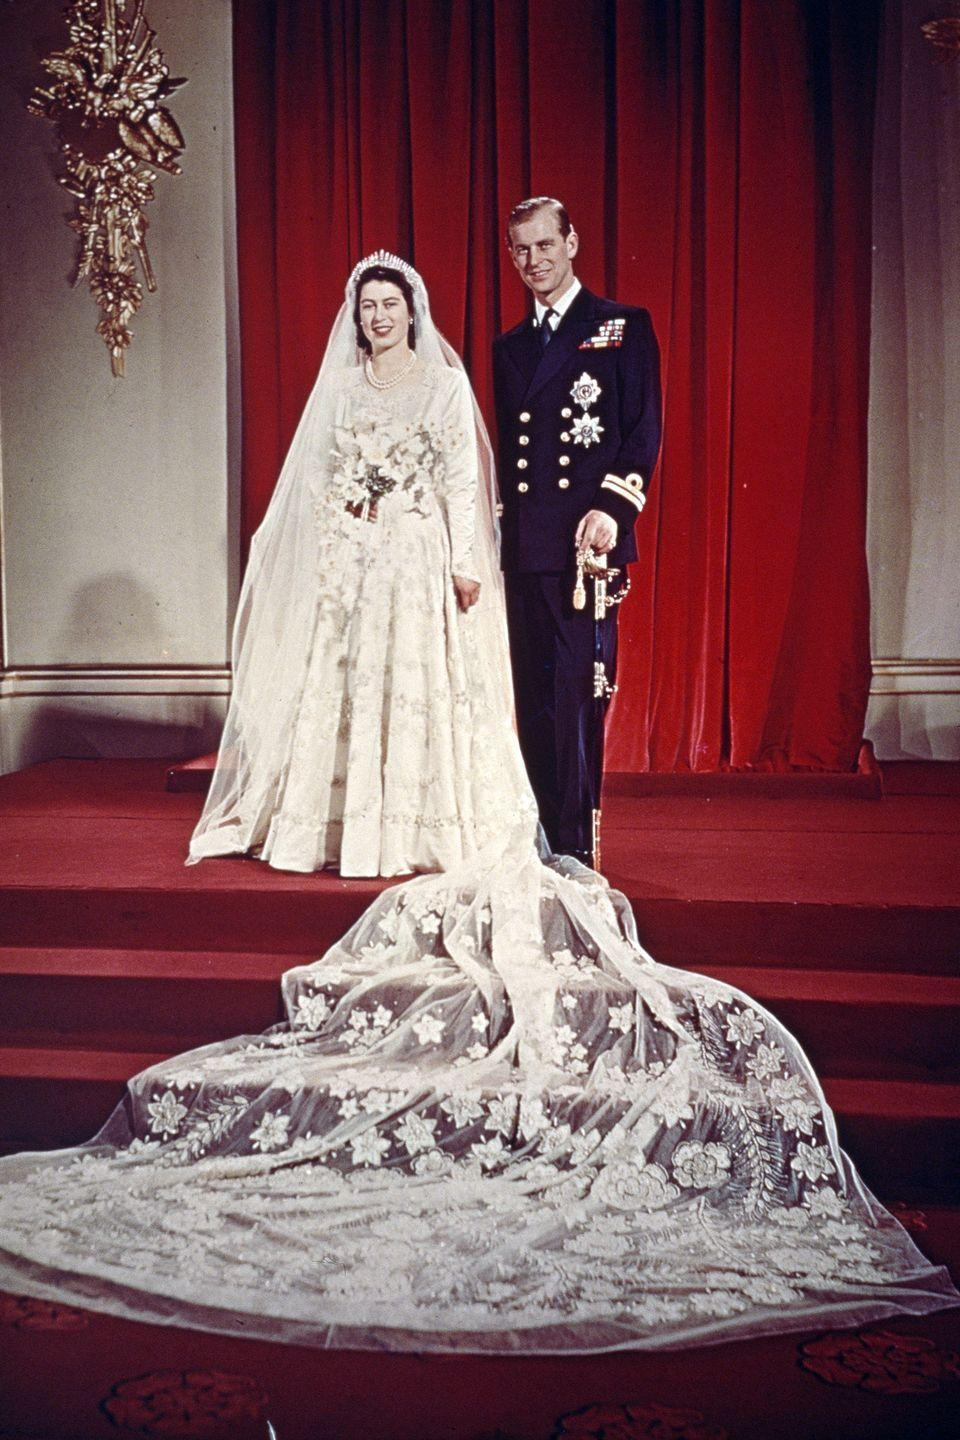 <p>The Queen rocked an elegant wedding dress with a 13-foot bridal trail designed by Norman Hartnel.</p>